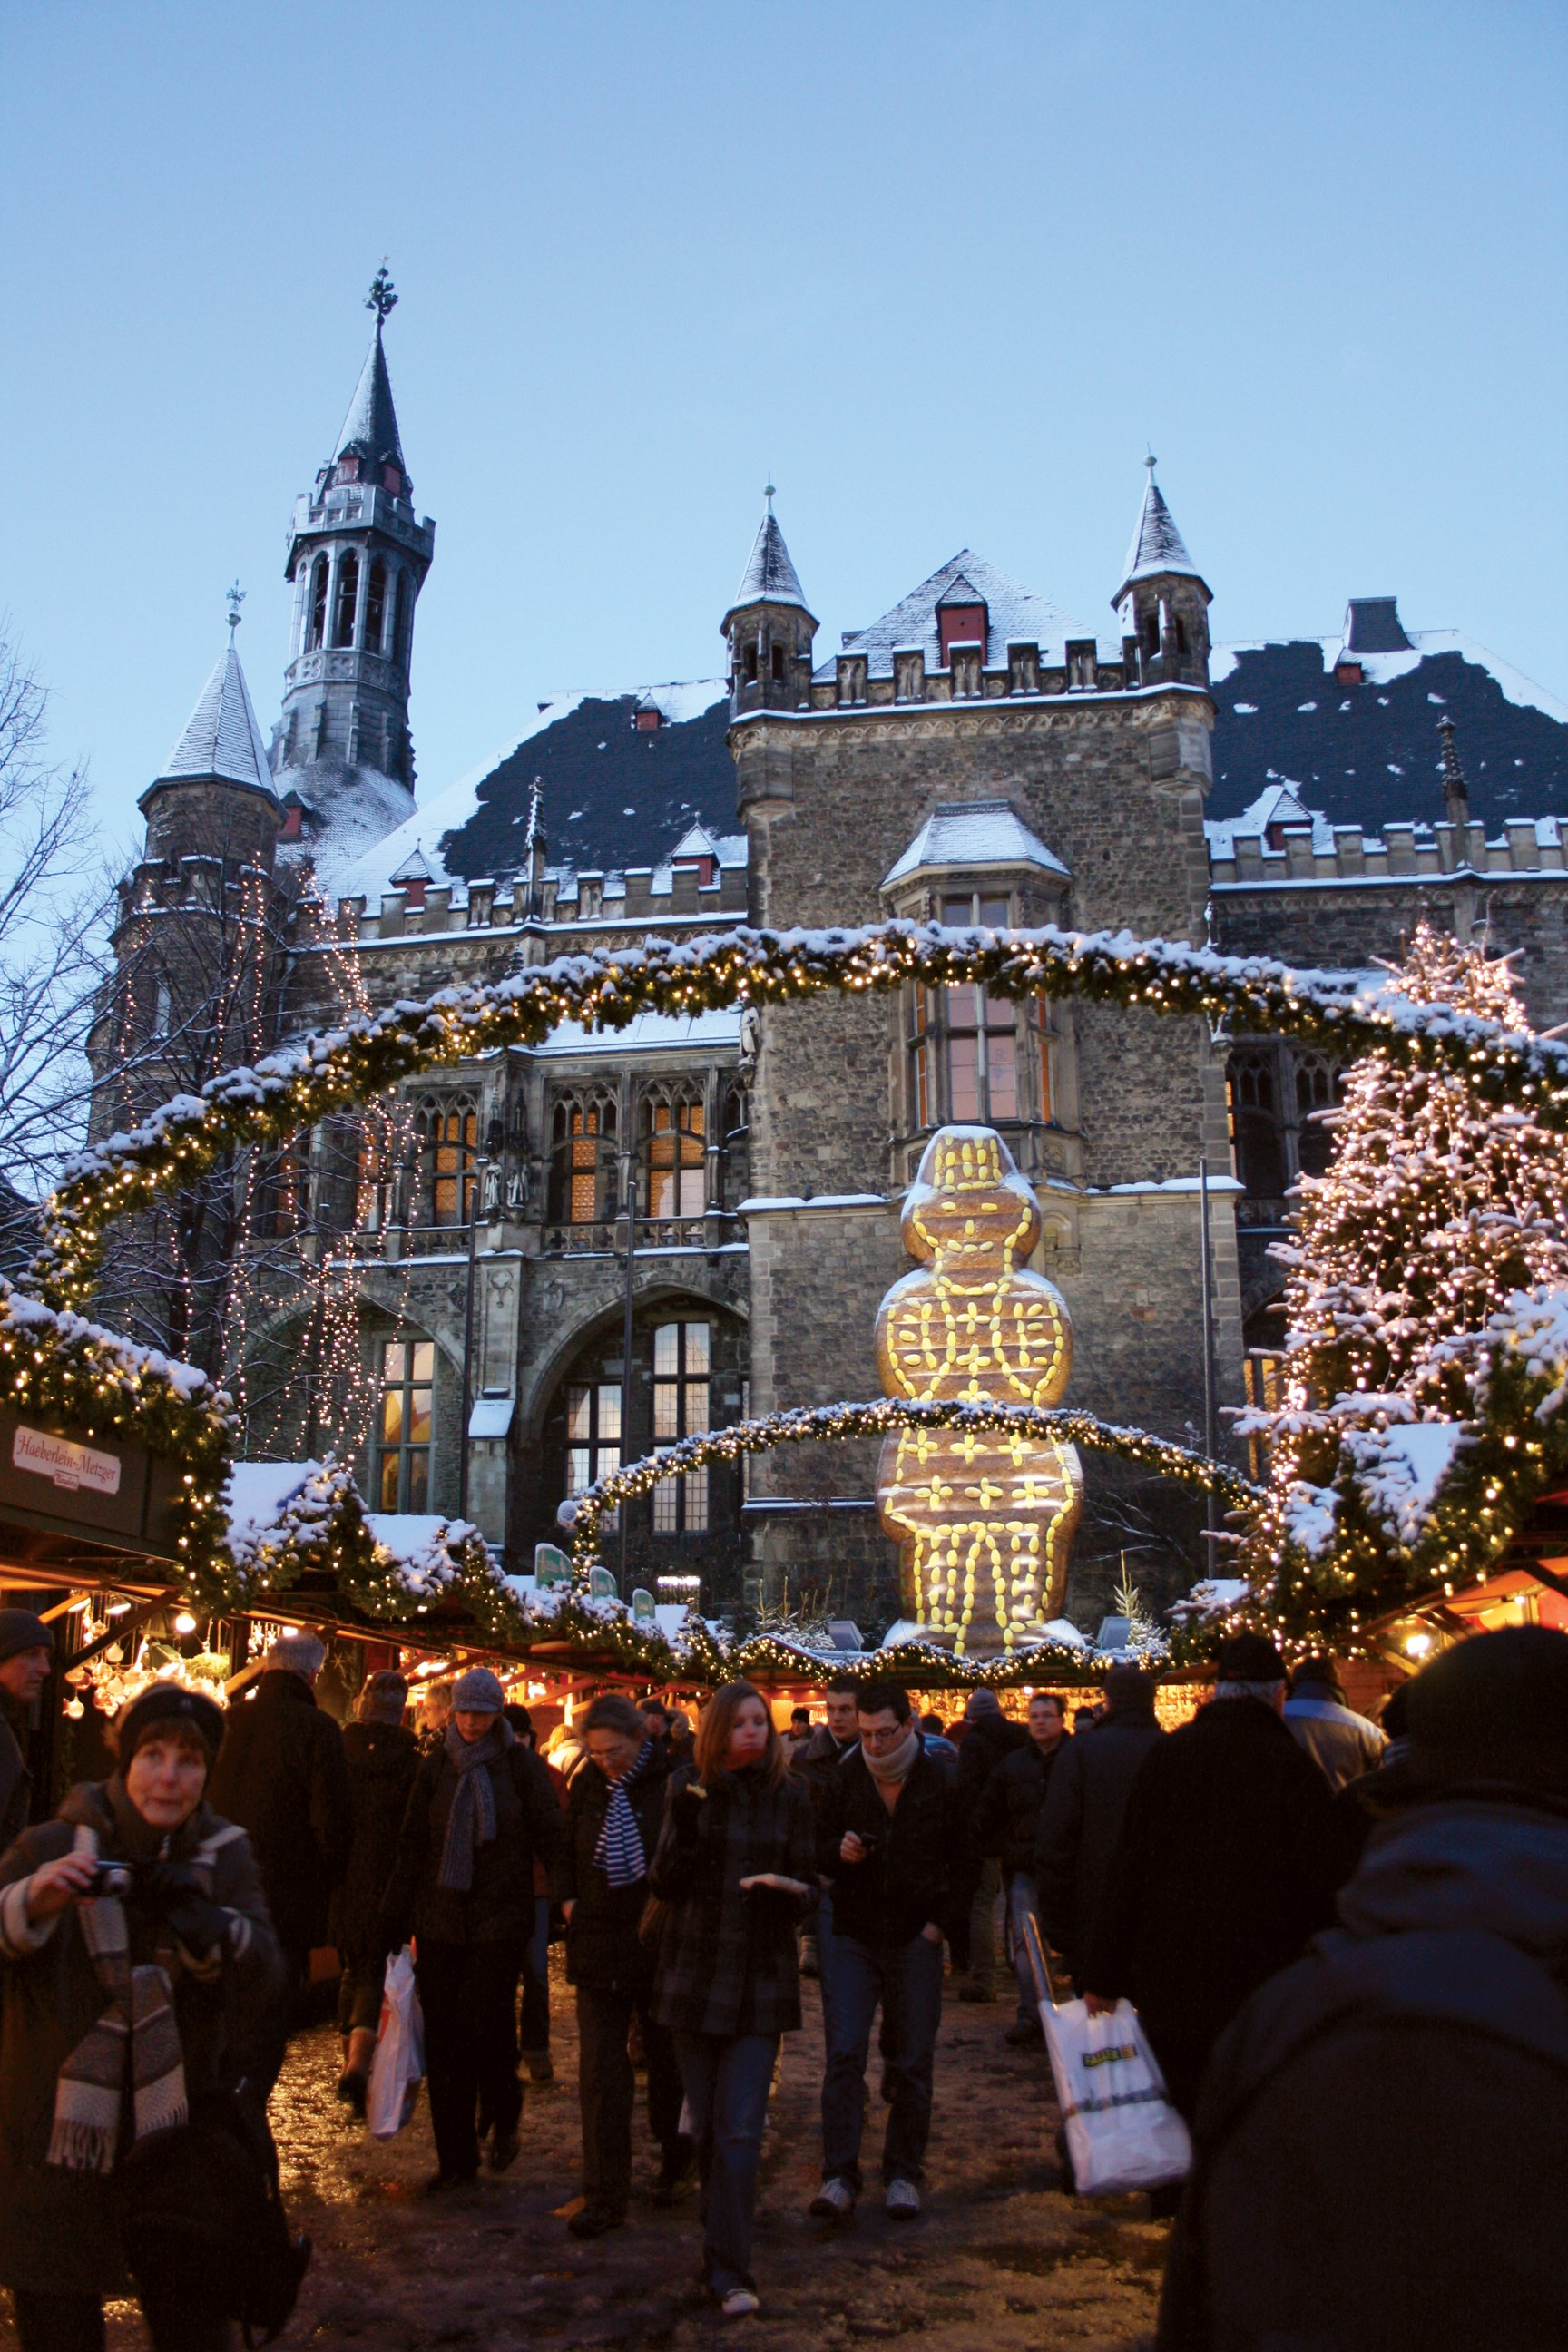 Astonishing Christmas Markets With Leger Holidays Any Way To Stay At Home Easy Diy Christmas Decorations Tissureus